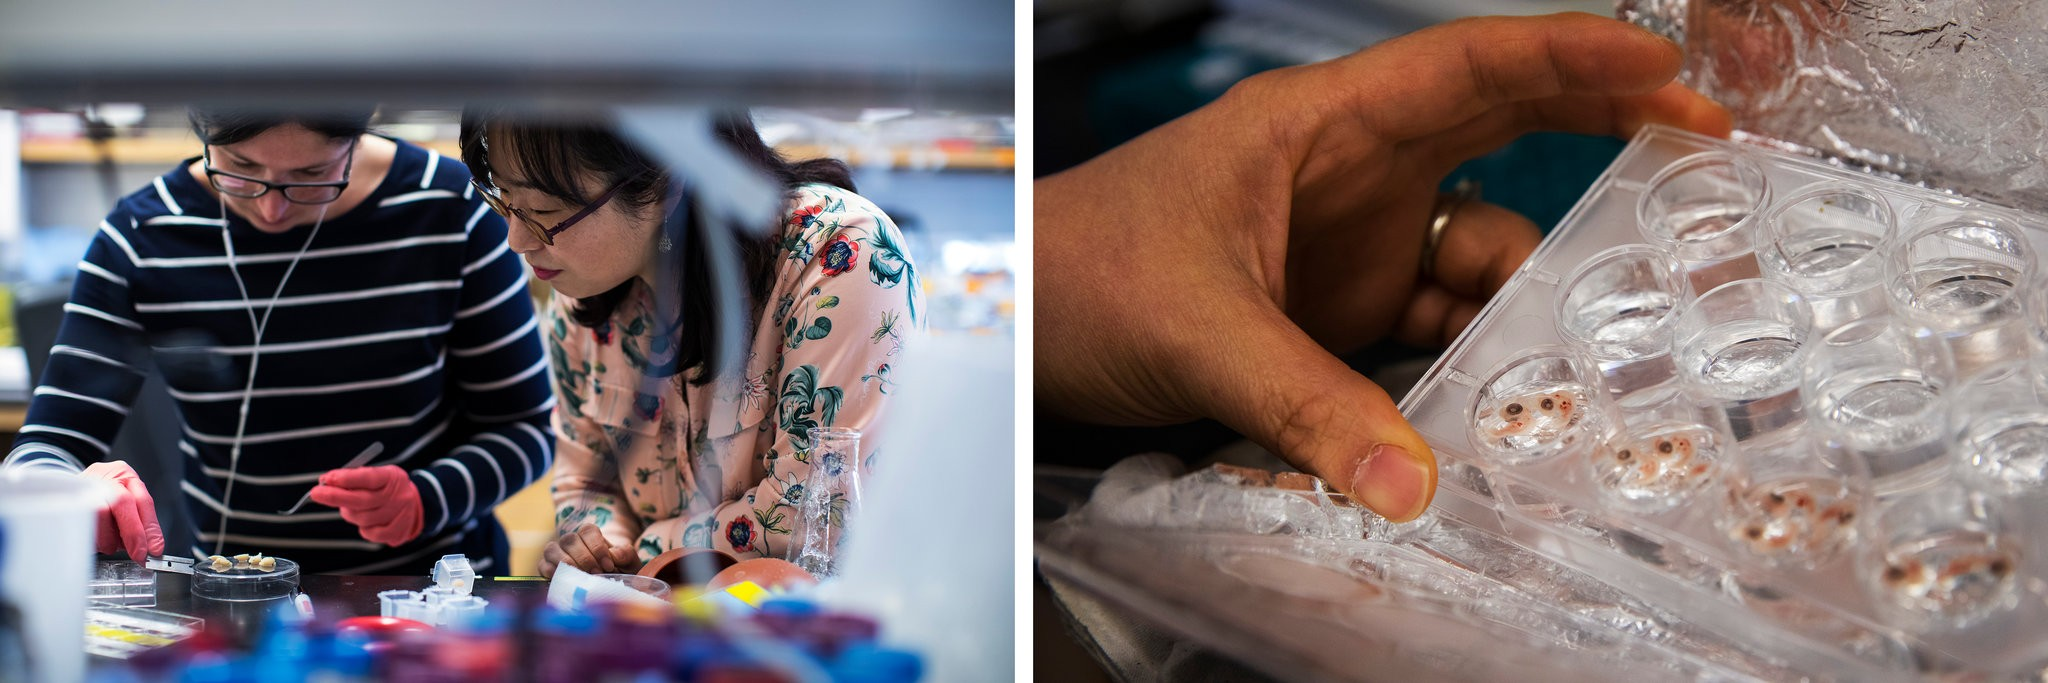 Left, Soo-Kyung watching a postdoctoral fellow with mouse brains in her lab at OHSU. Right, examining chicken embryos. She has begun aiming her research at understanding Yuna's brain disorder.CreditRuth Fremson/The New York Times